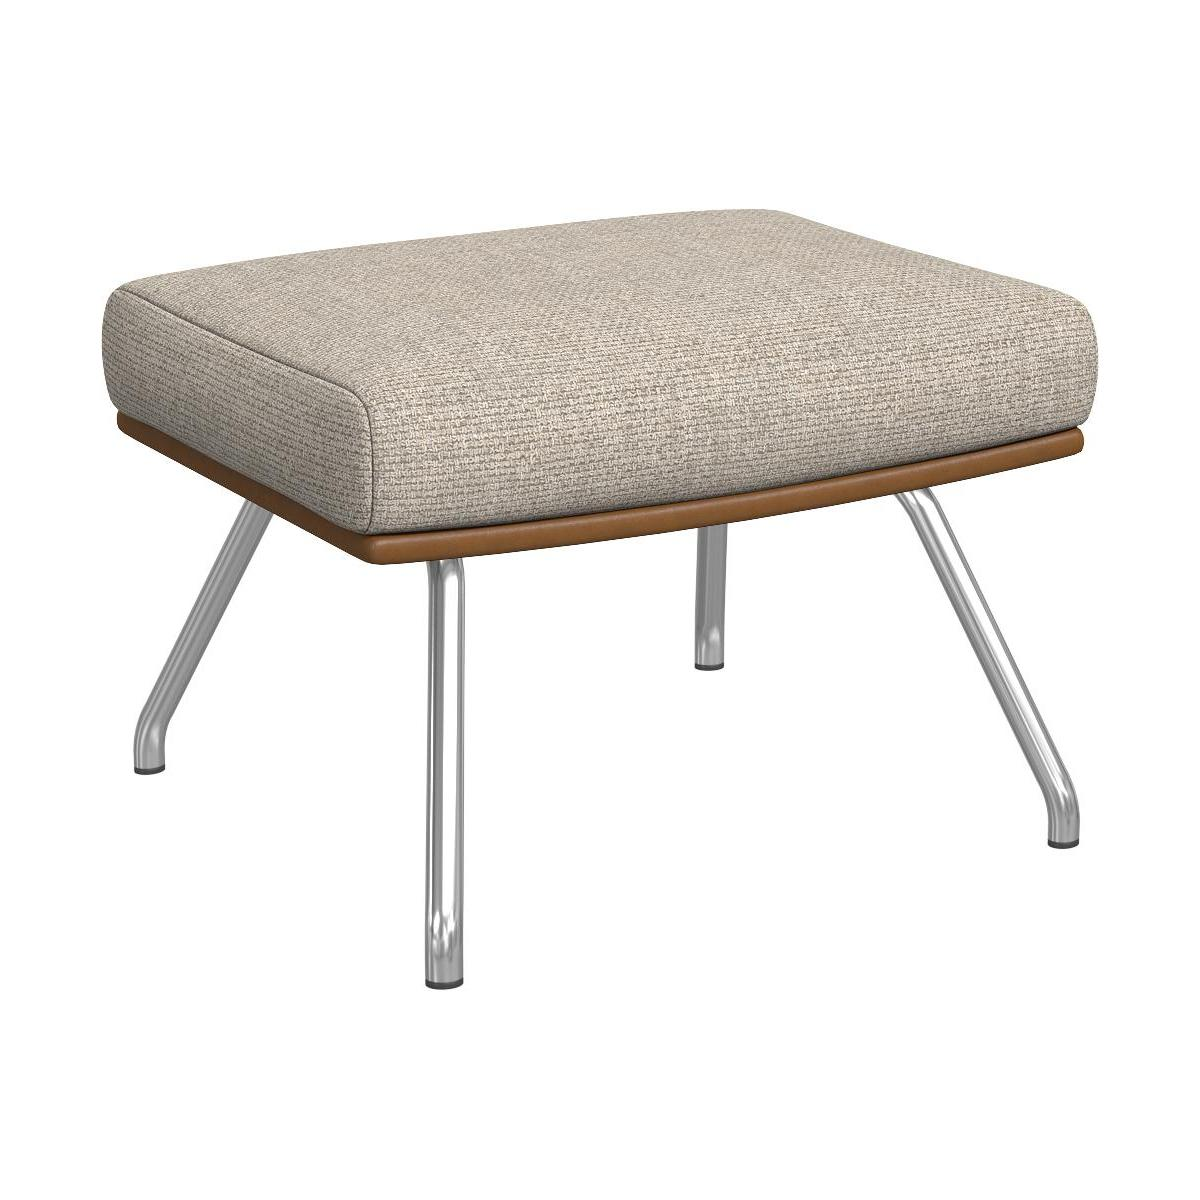 Footstool in Ancio fabric, nature et cuir marron with matt metal legs n°1